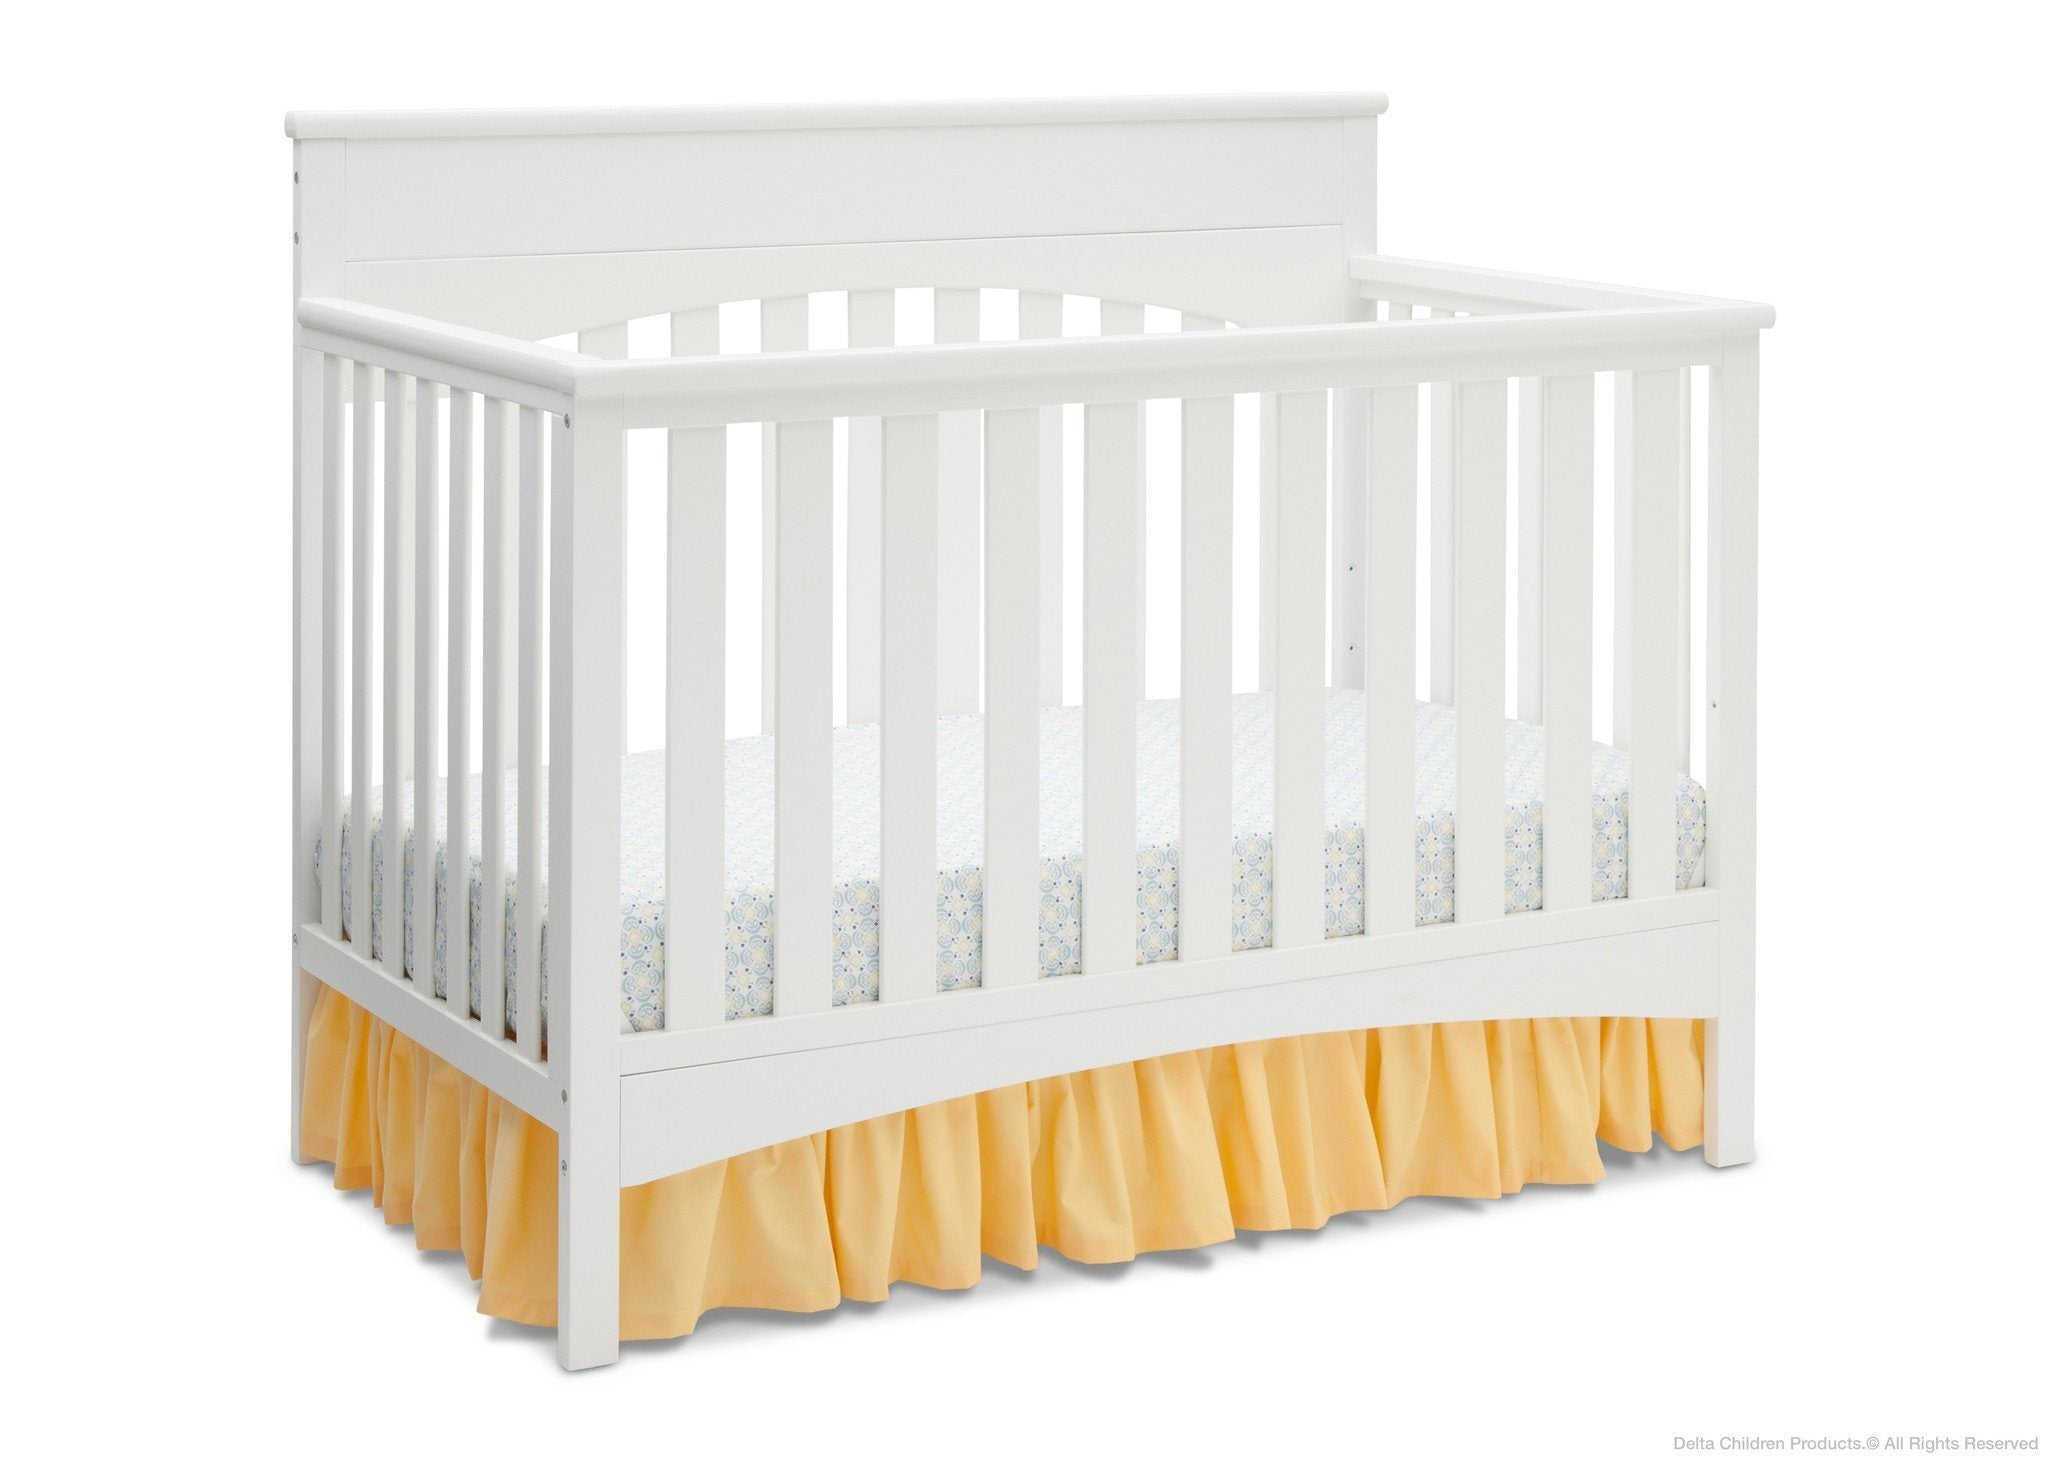 Delta Children White Ambiance (108) Bennington Lifestyle 4-in-1 Crib, Crib Conversion